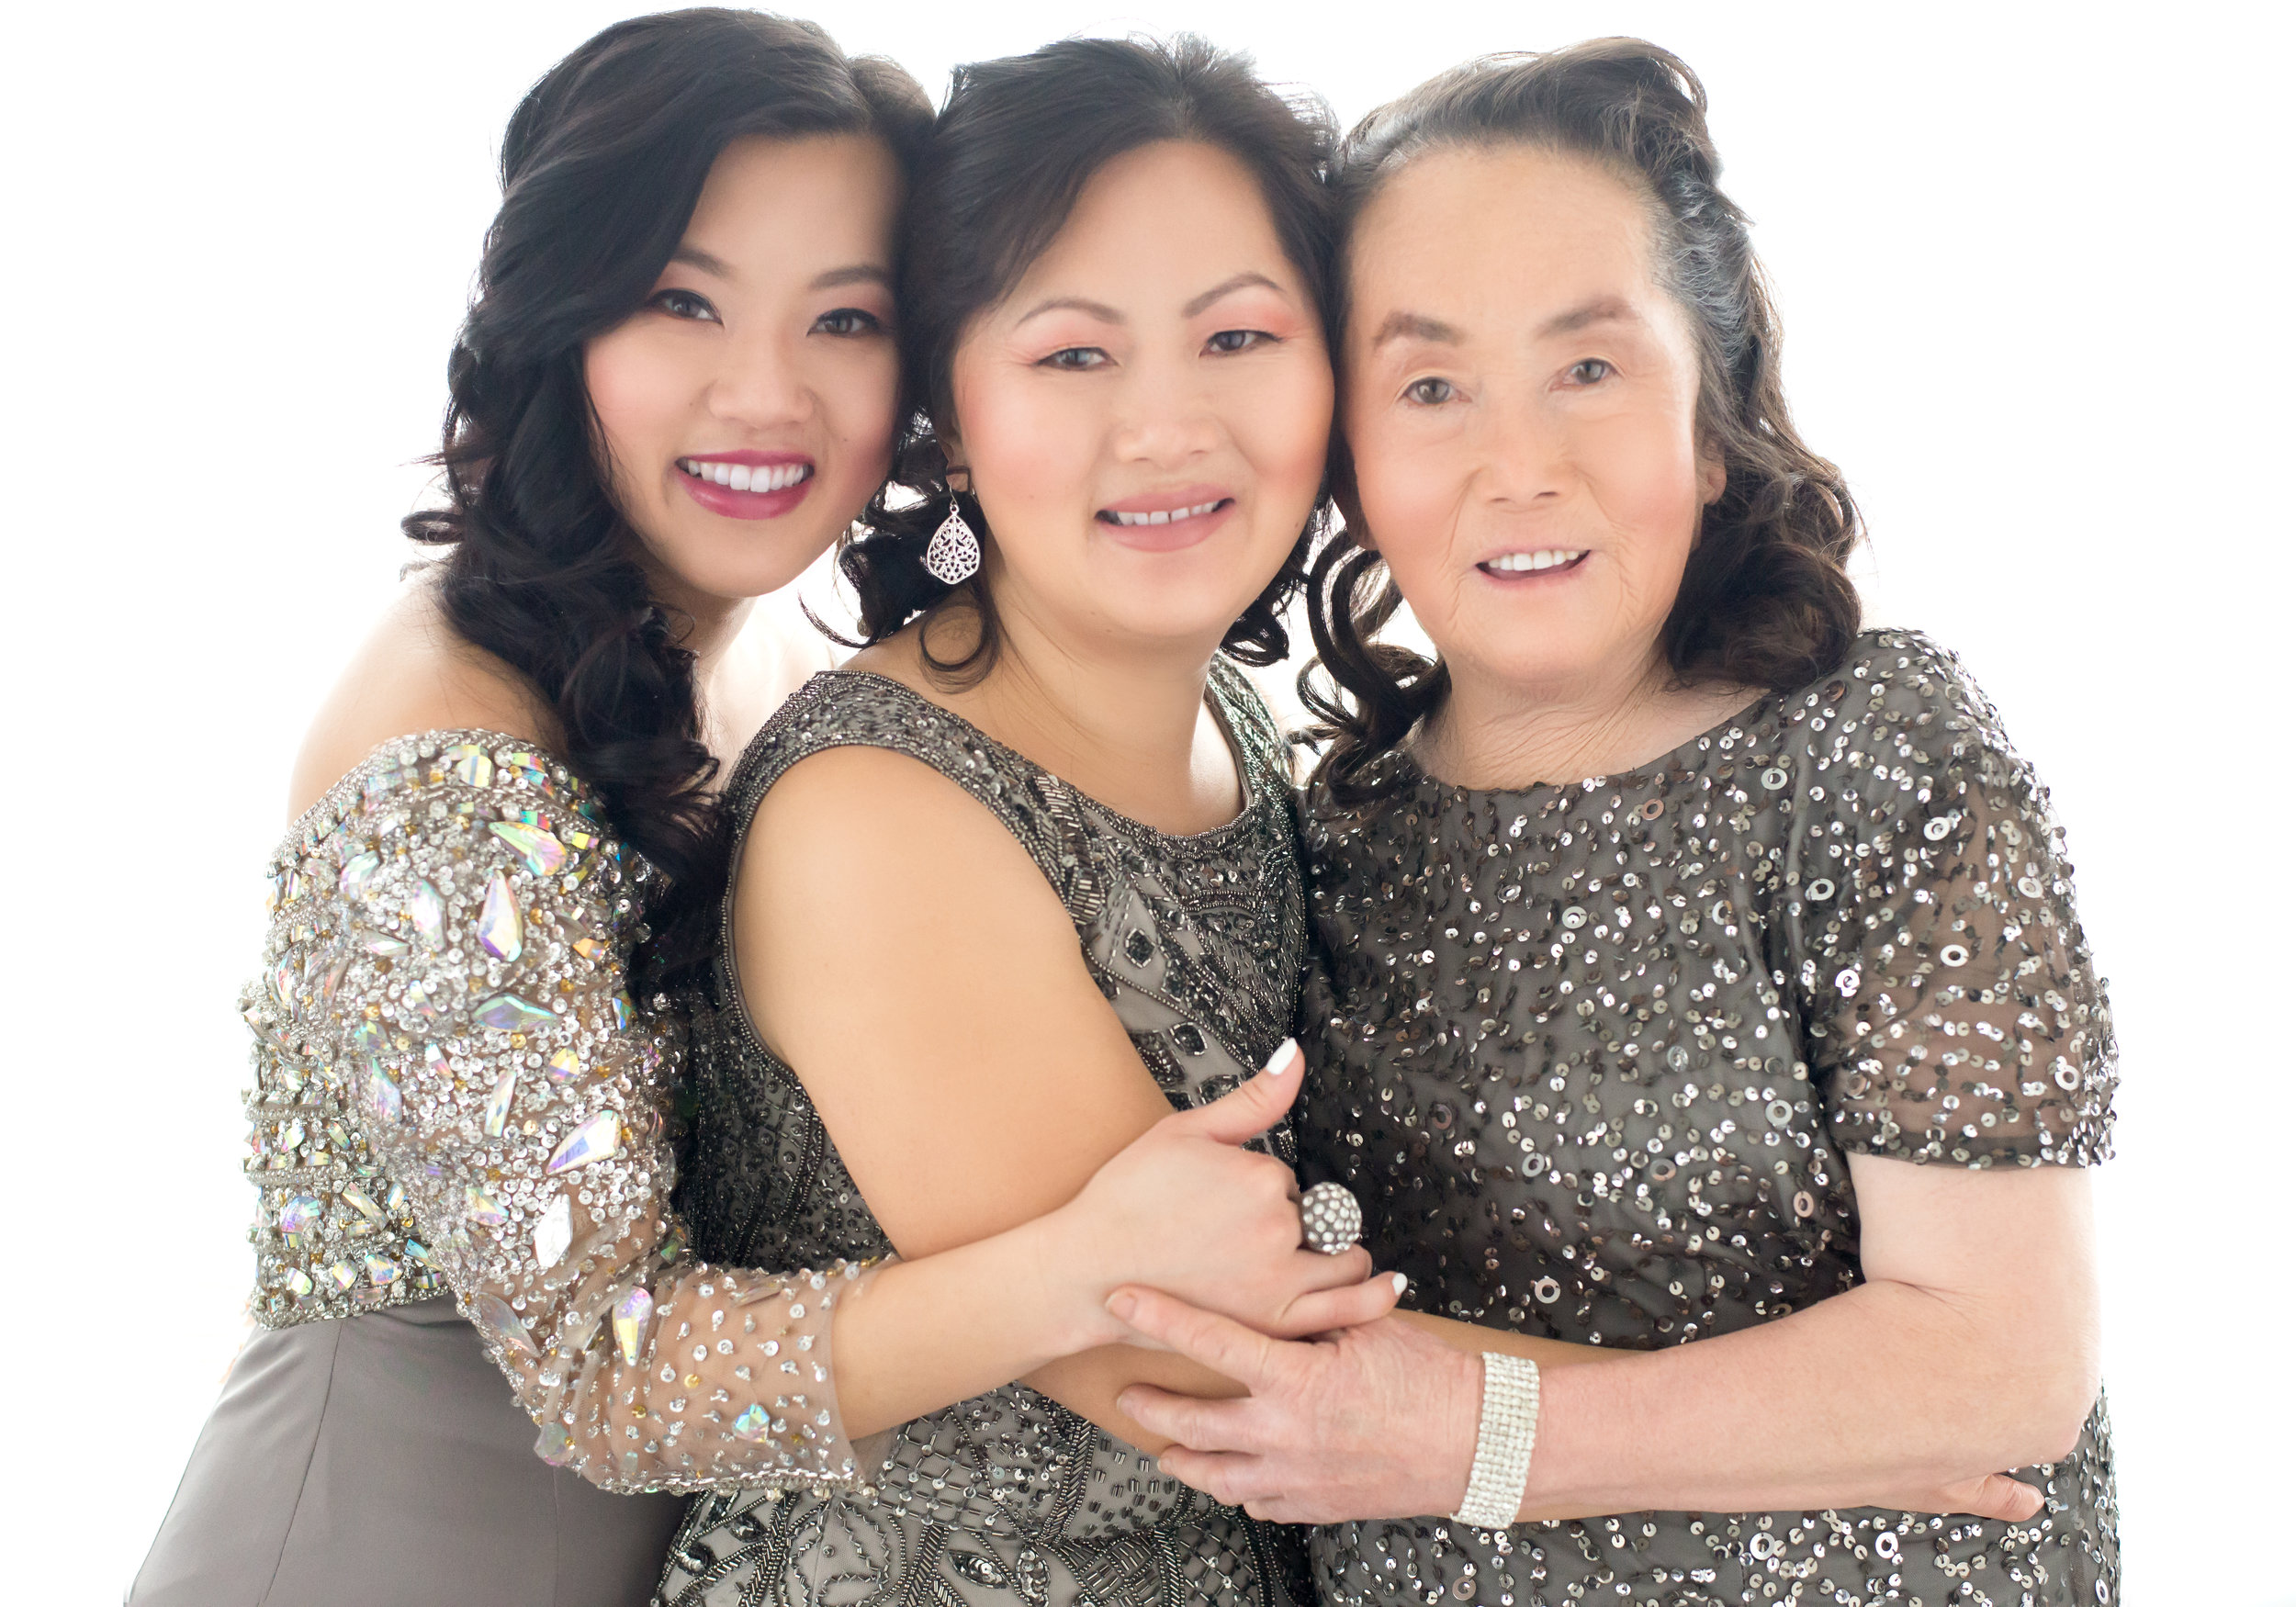 From March-The Gorgeous Thao Family. My first three generation photo shoot!